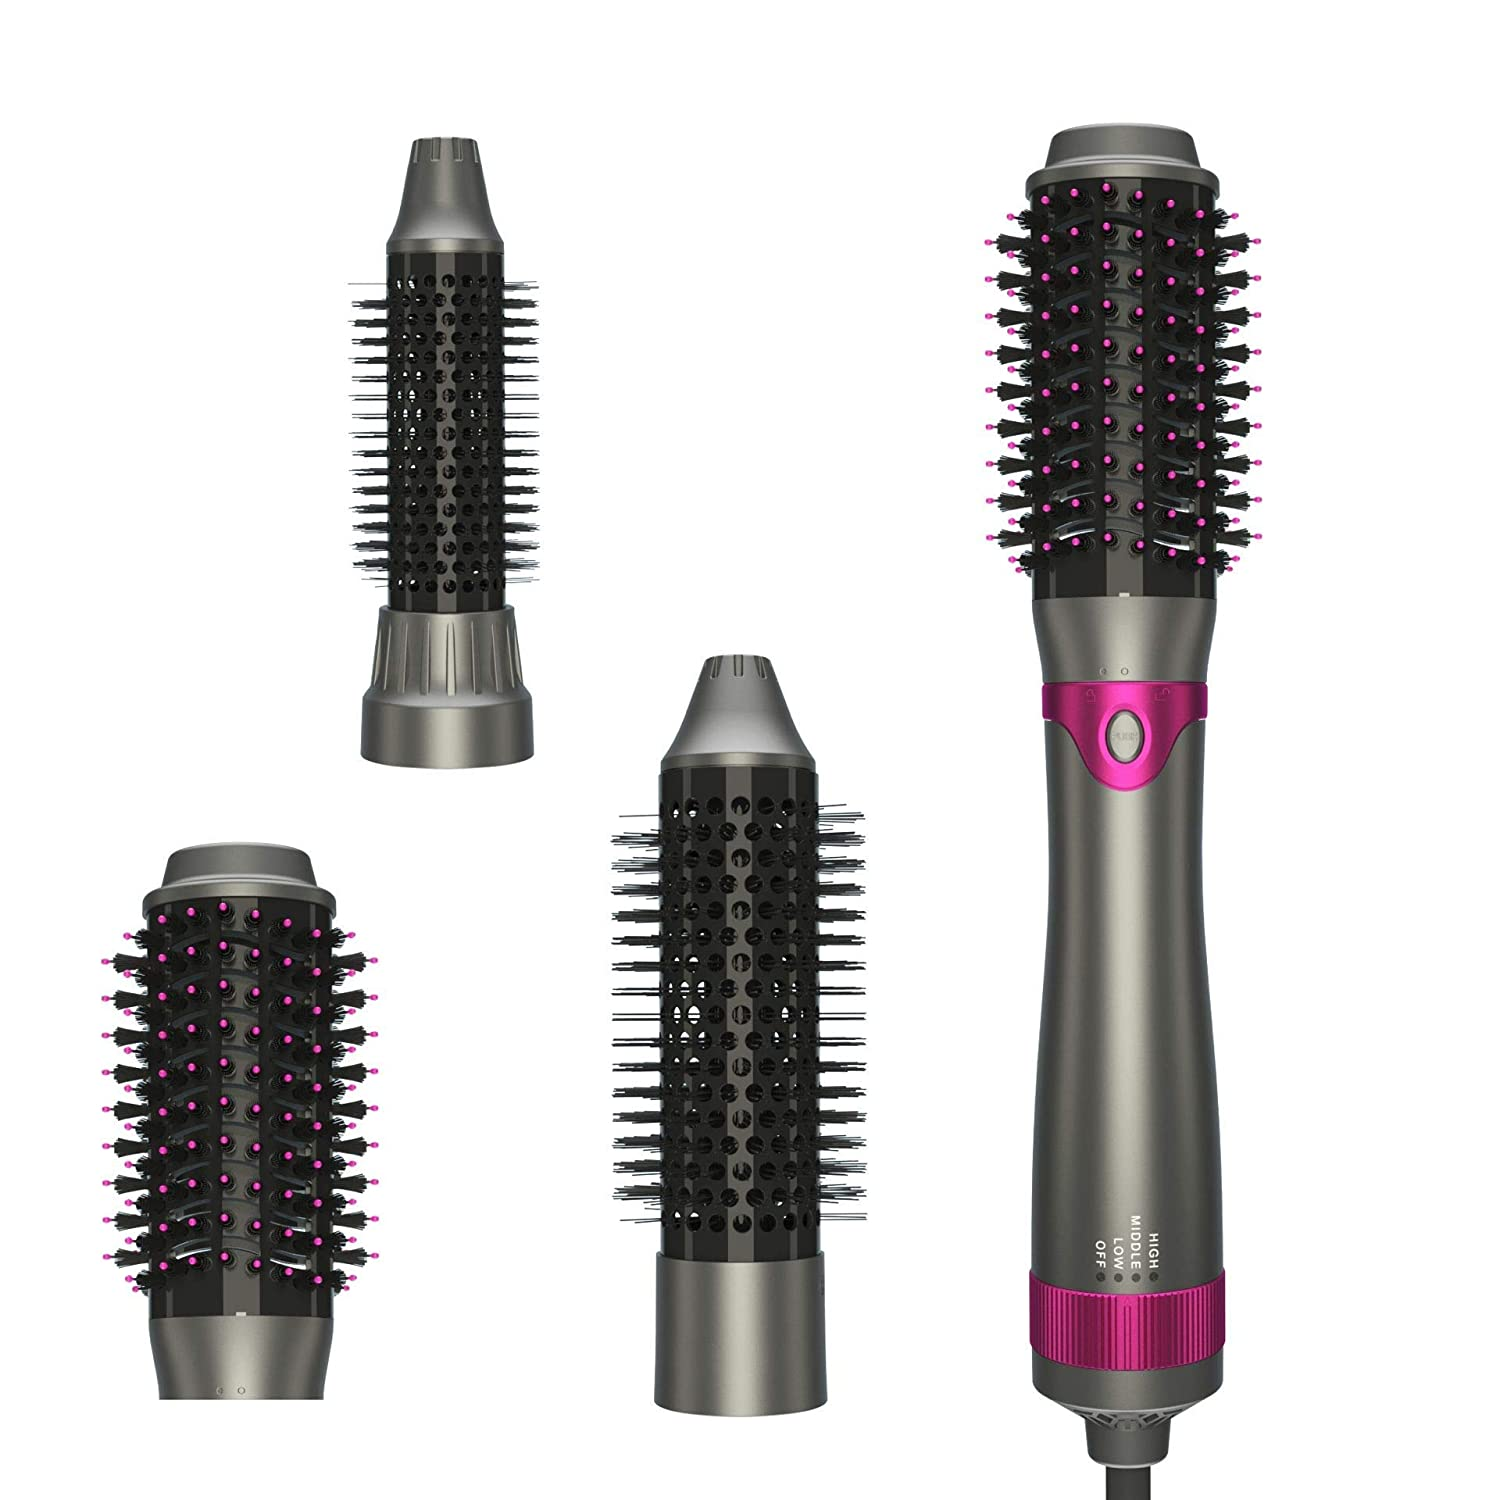 Hot Air Brush, Hair Dryer Brush, One Step Hair Dryer & Volumizer, Curler Combo with Interchangeable Brush Head, Anti-scald Negative Ion Hair Straightener Brush, Low Noise Design